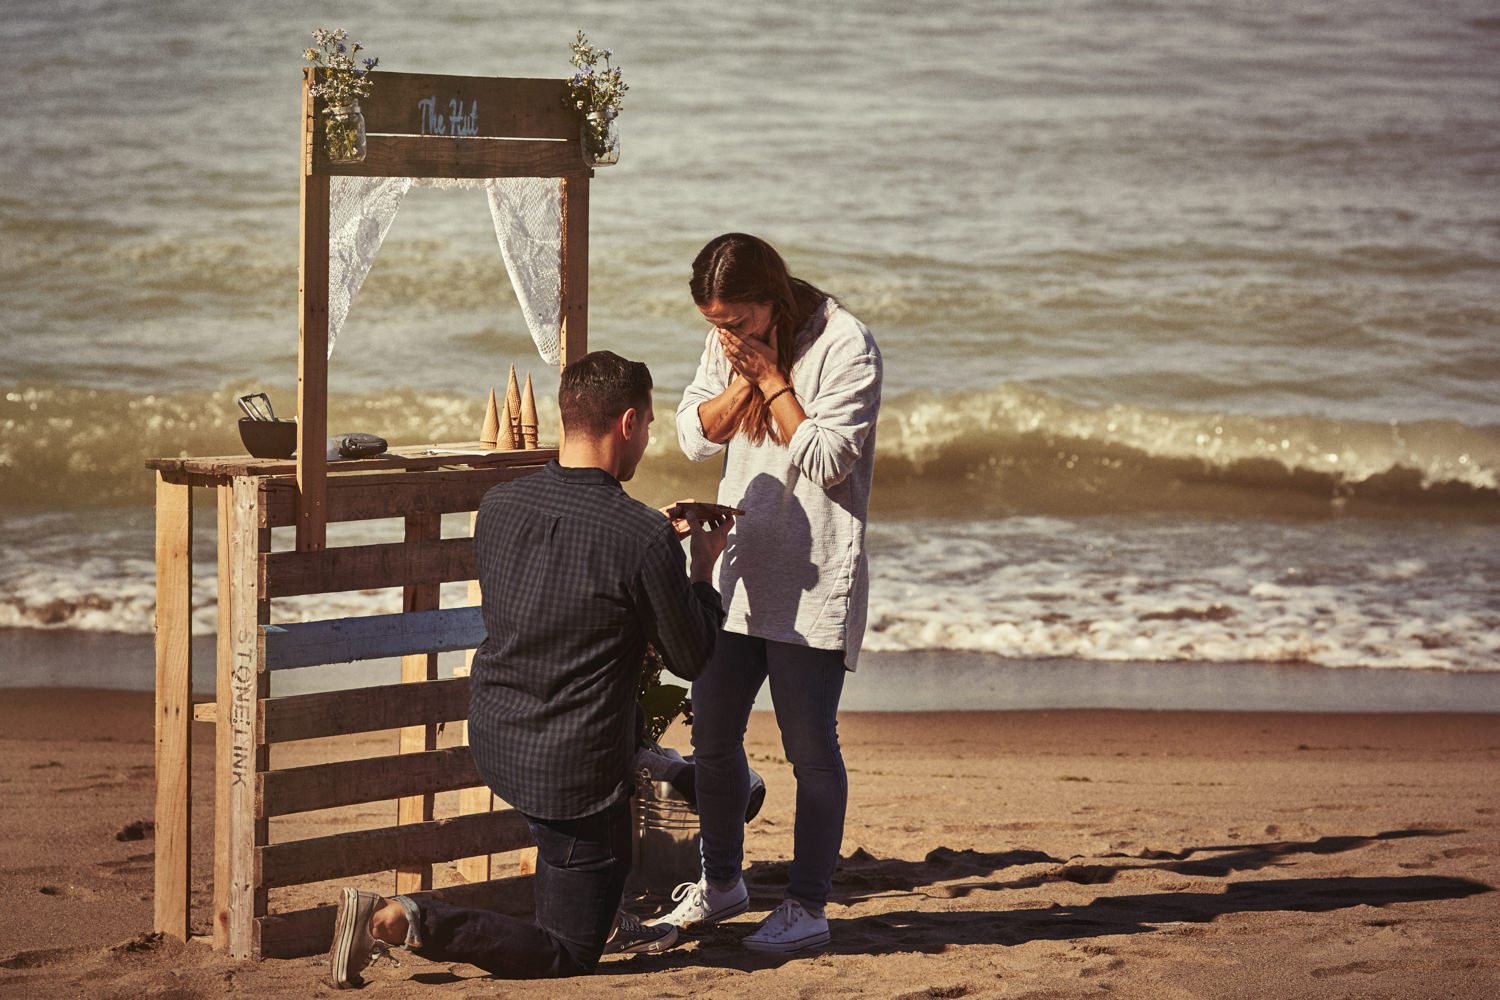 The Actual Proposal